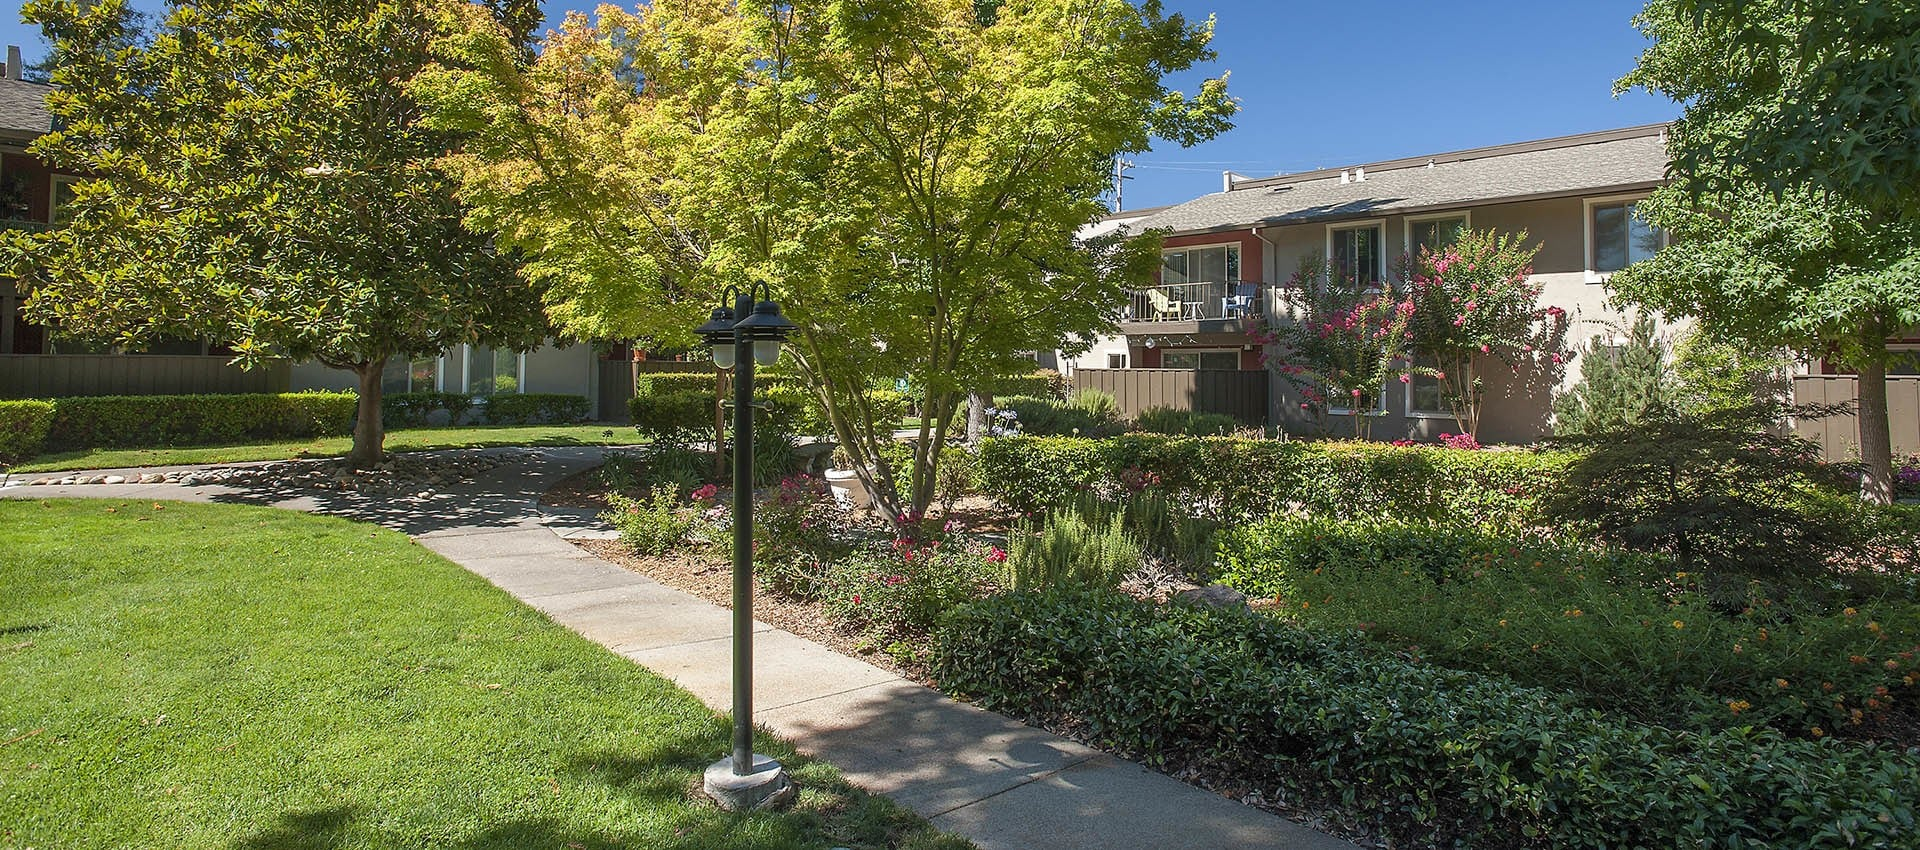 Landscaped And Lighted Path at Flora Condominium Rentals in Walnut Creek, California